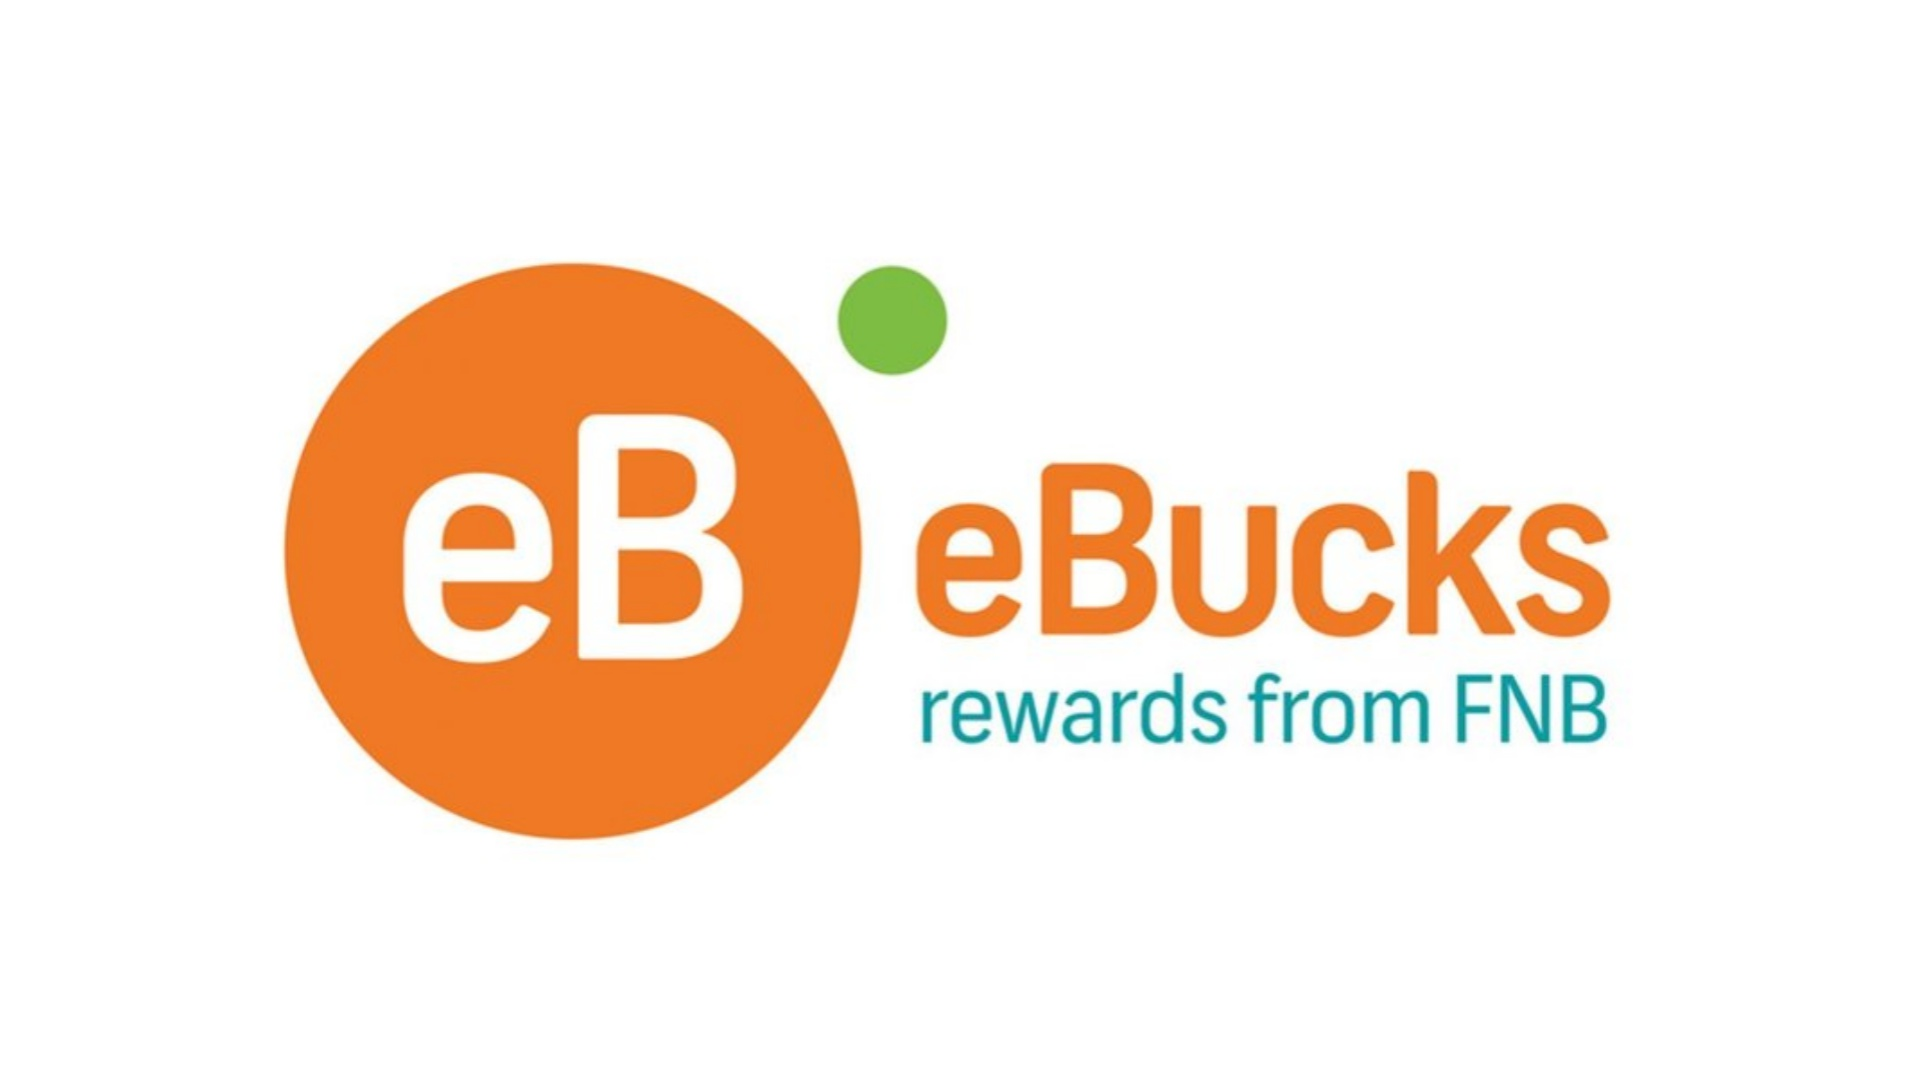 FNB banking app users can now book flights with their eBucks - htxt